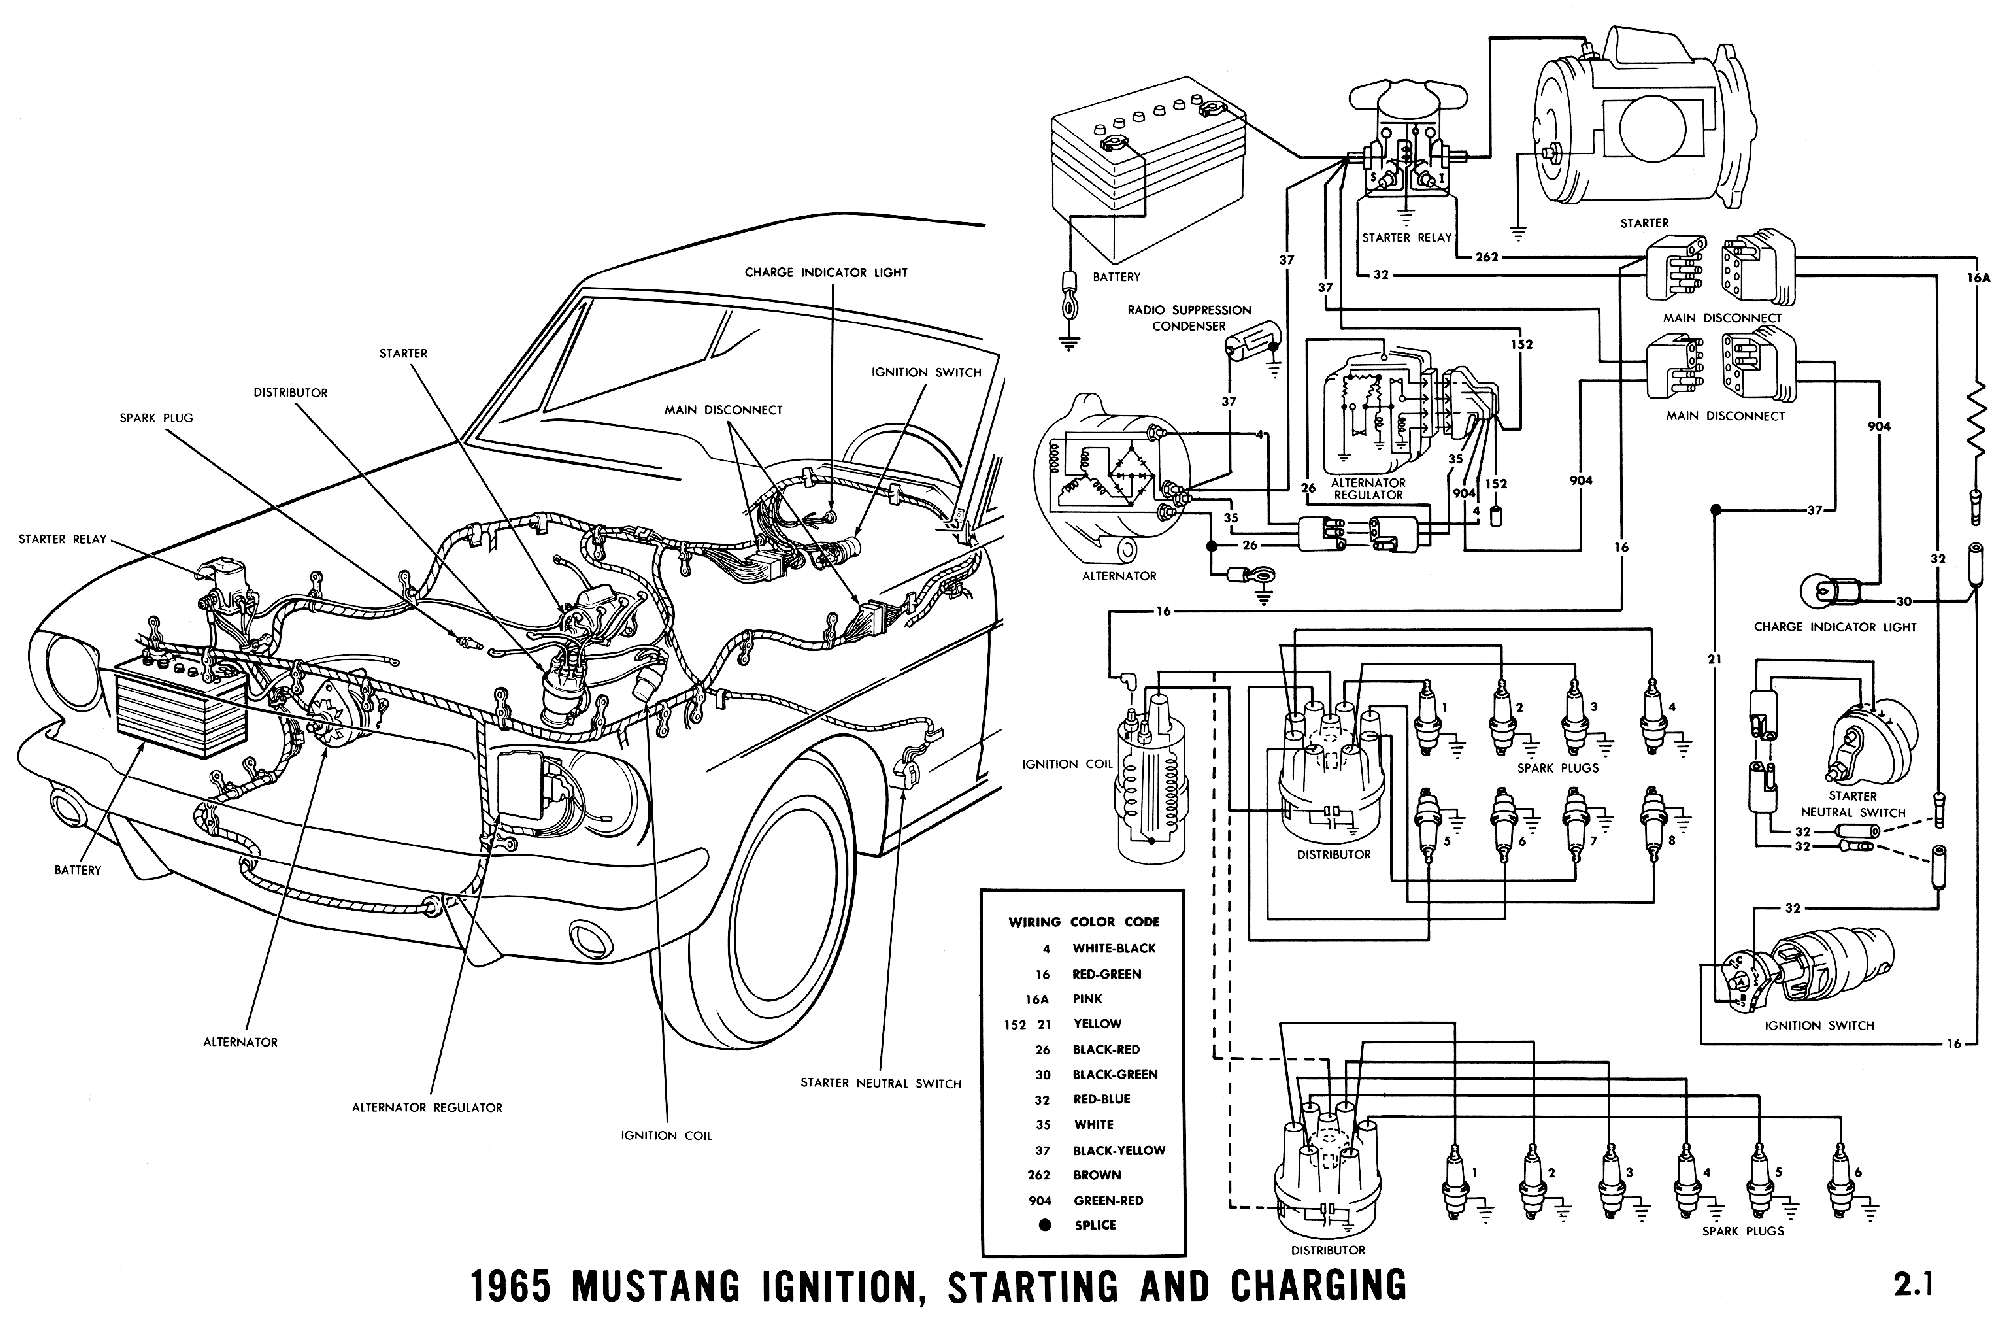 1965 Mustang Engine Diagram List Of Schematic Circuit 2012 Wiring Diagrams Average Joe Restoration Rh Averagejoerestoration Com